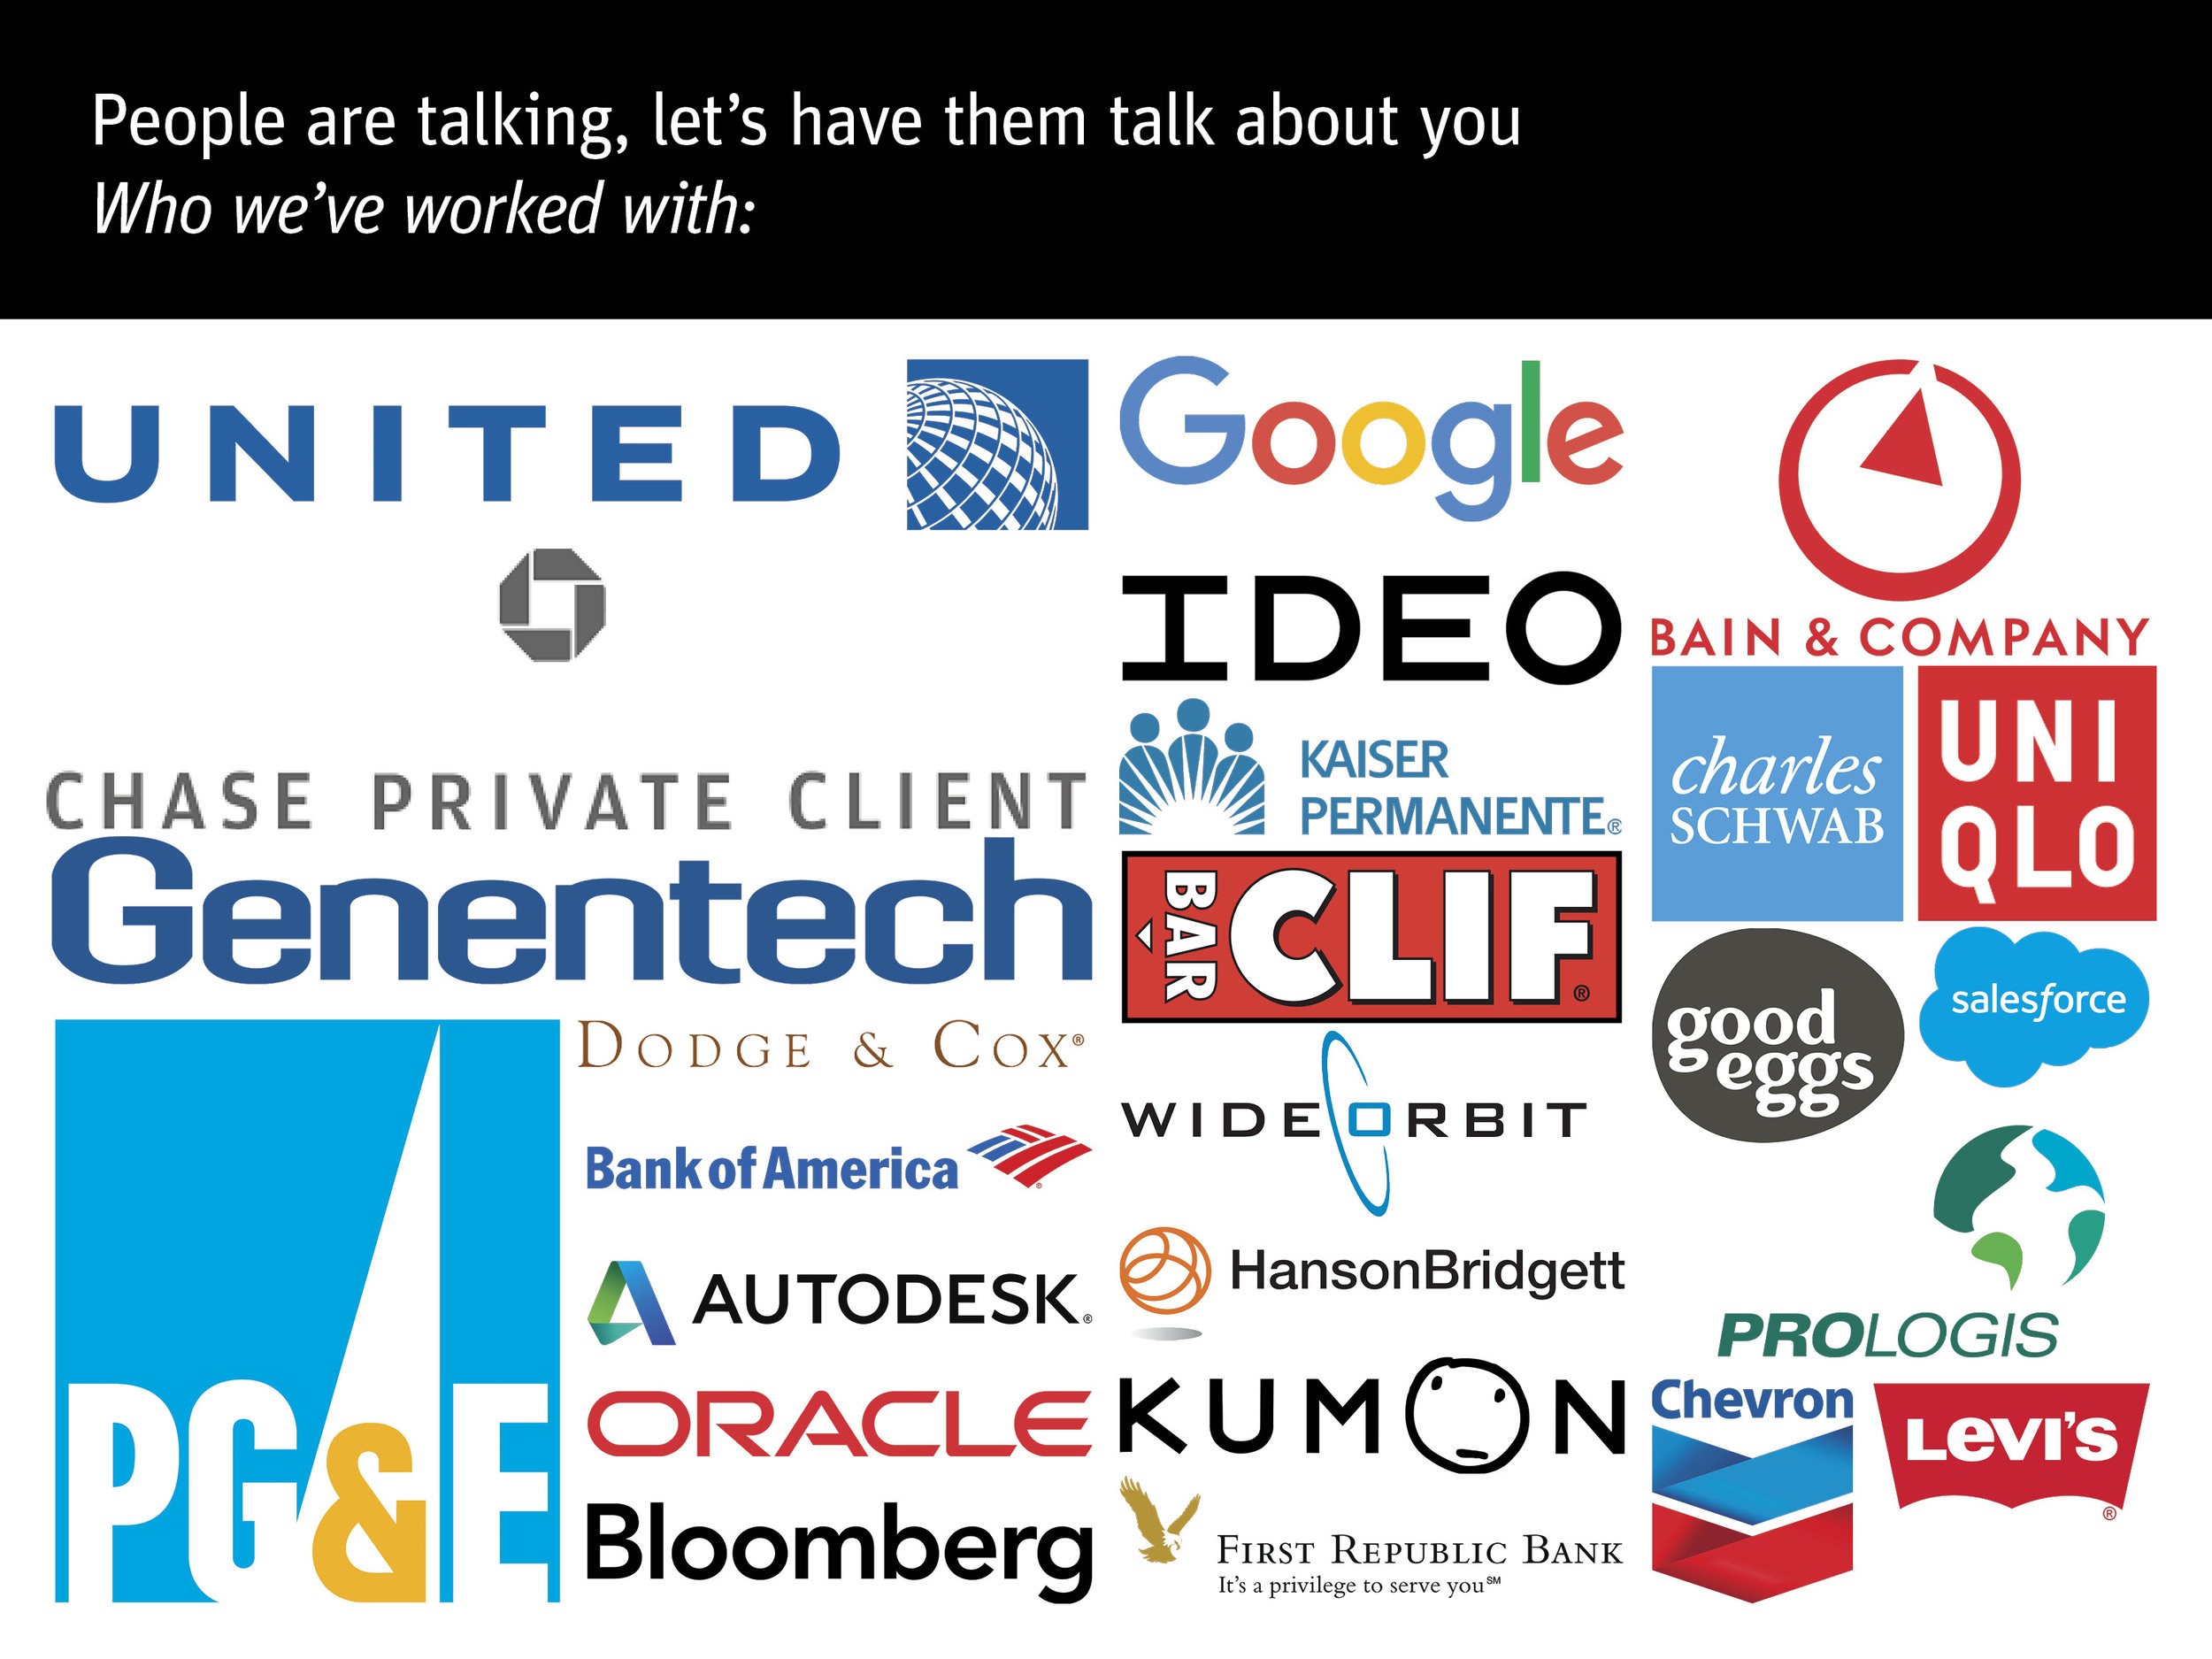 This slide was probably the trickiest to organize- I created a grid with the biggest sponsors in a large column on the left, then 1.5 smaller columns of rectangular logos in the middle, then the square and oddly shaped logos on the far right. I had never wished that there was a standard logo size and ratio before this.